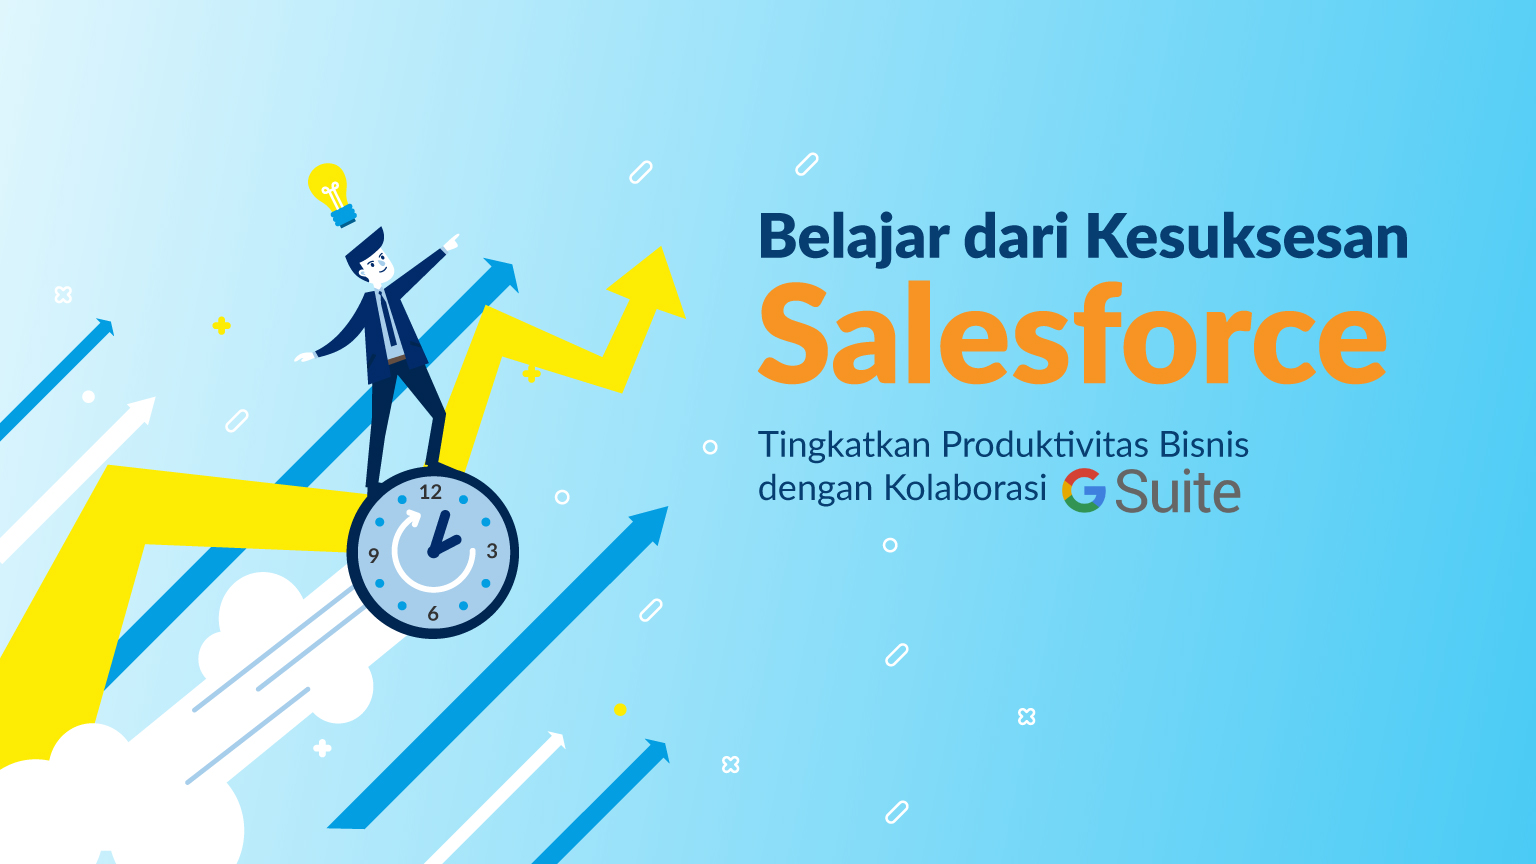 testimoni G Suite Salesforce 2